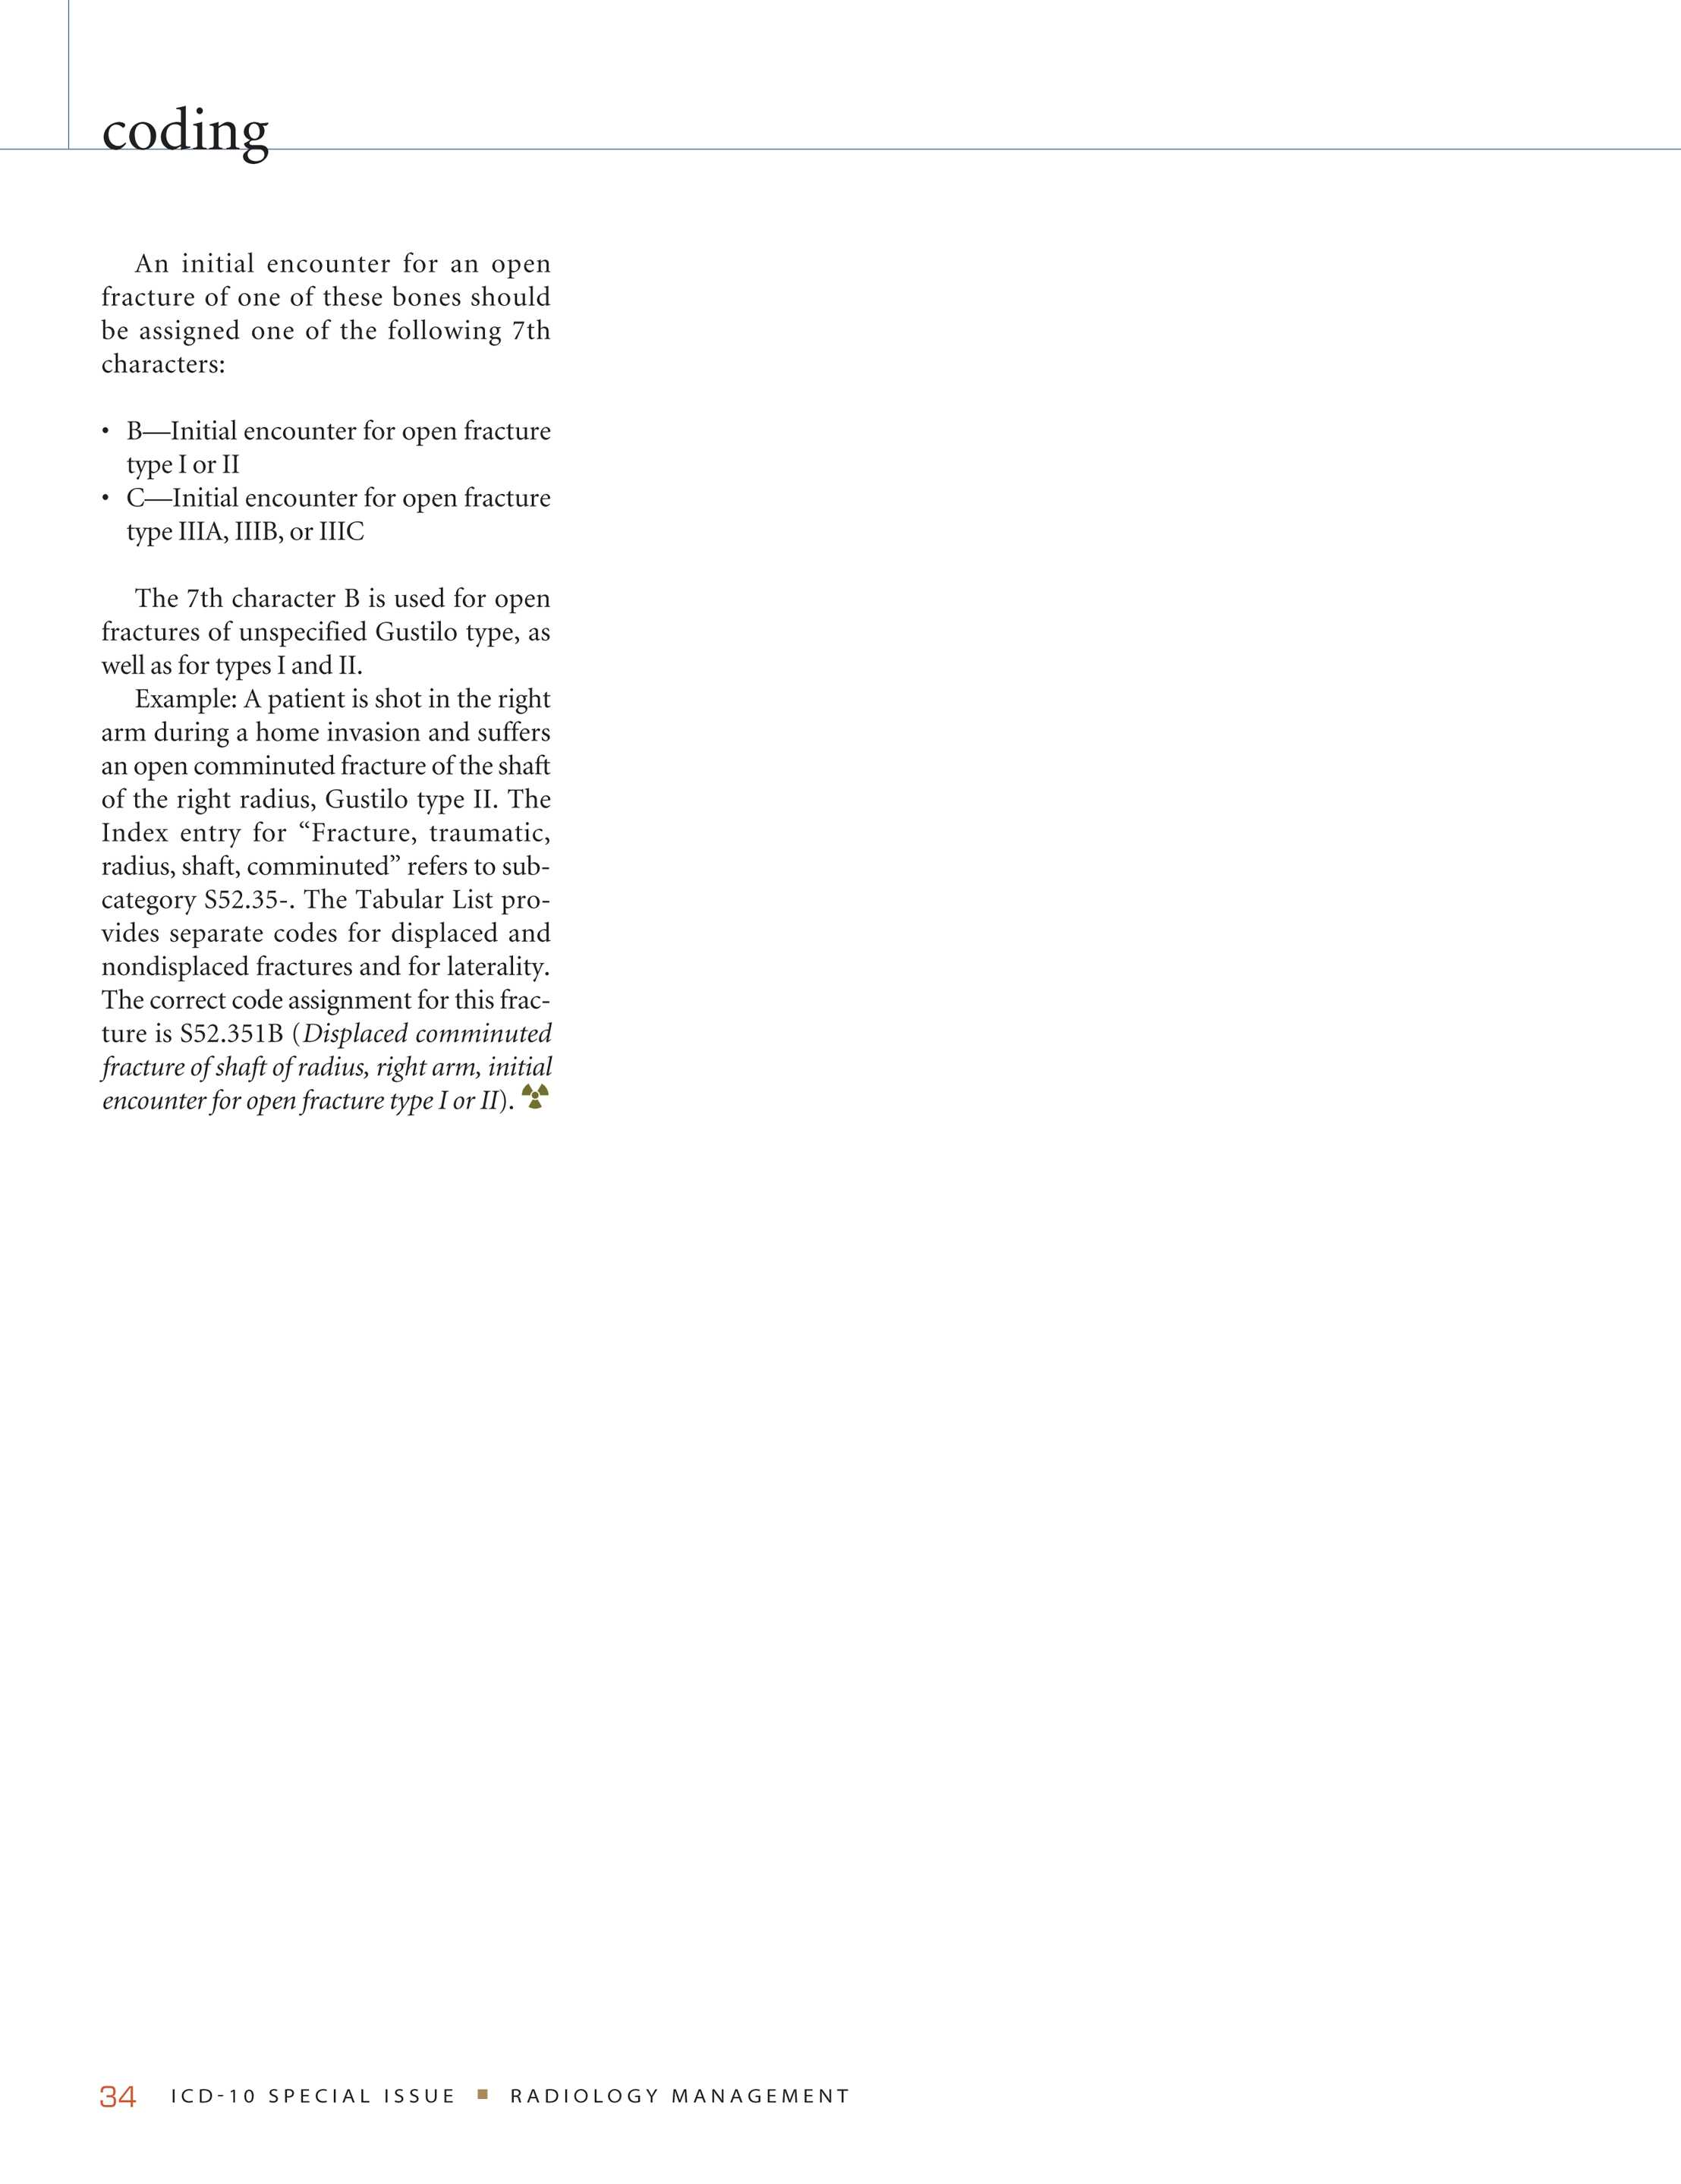 Radiology Management - ICD-10 2017 - page 33